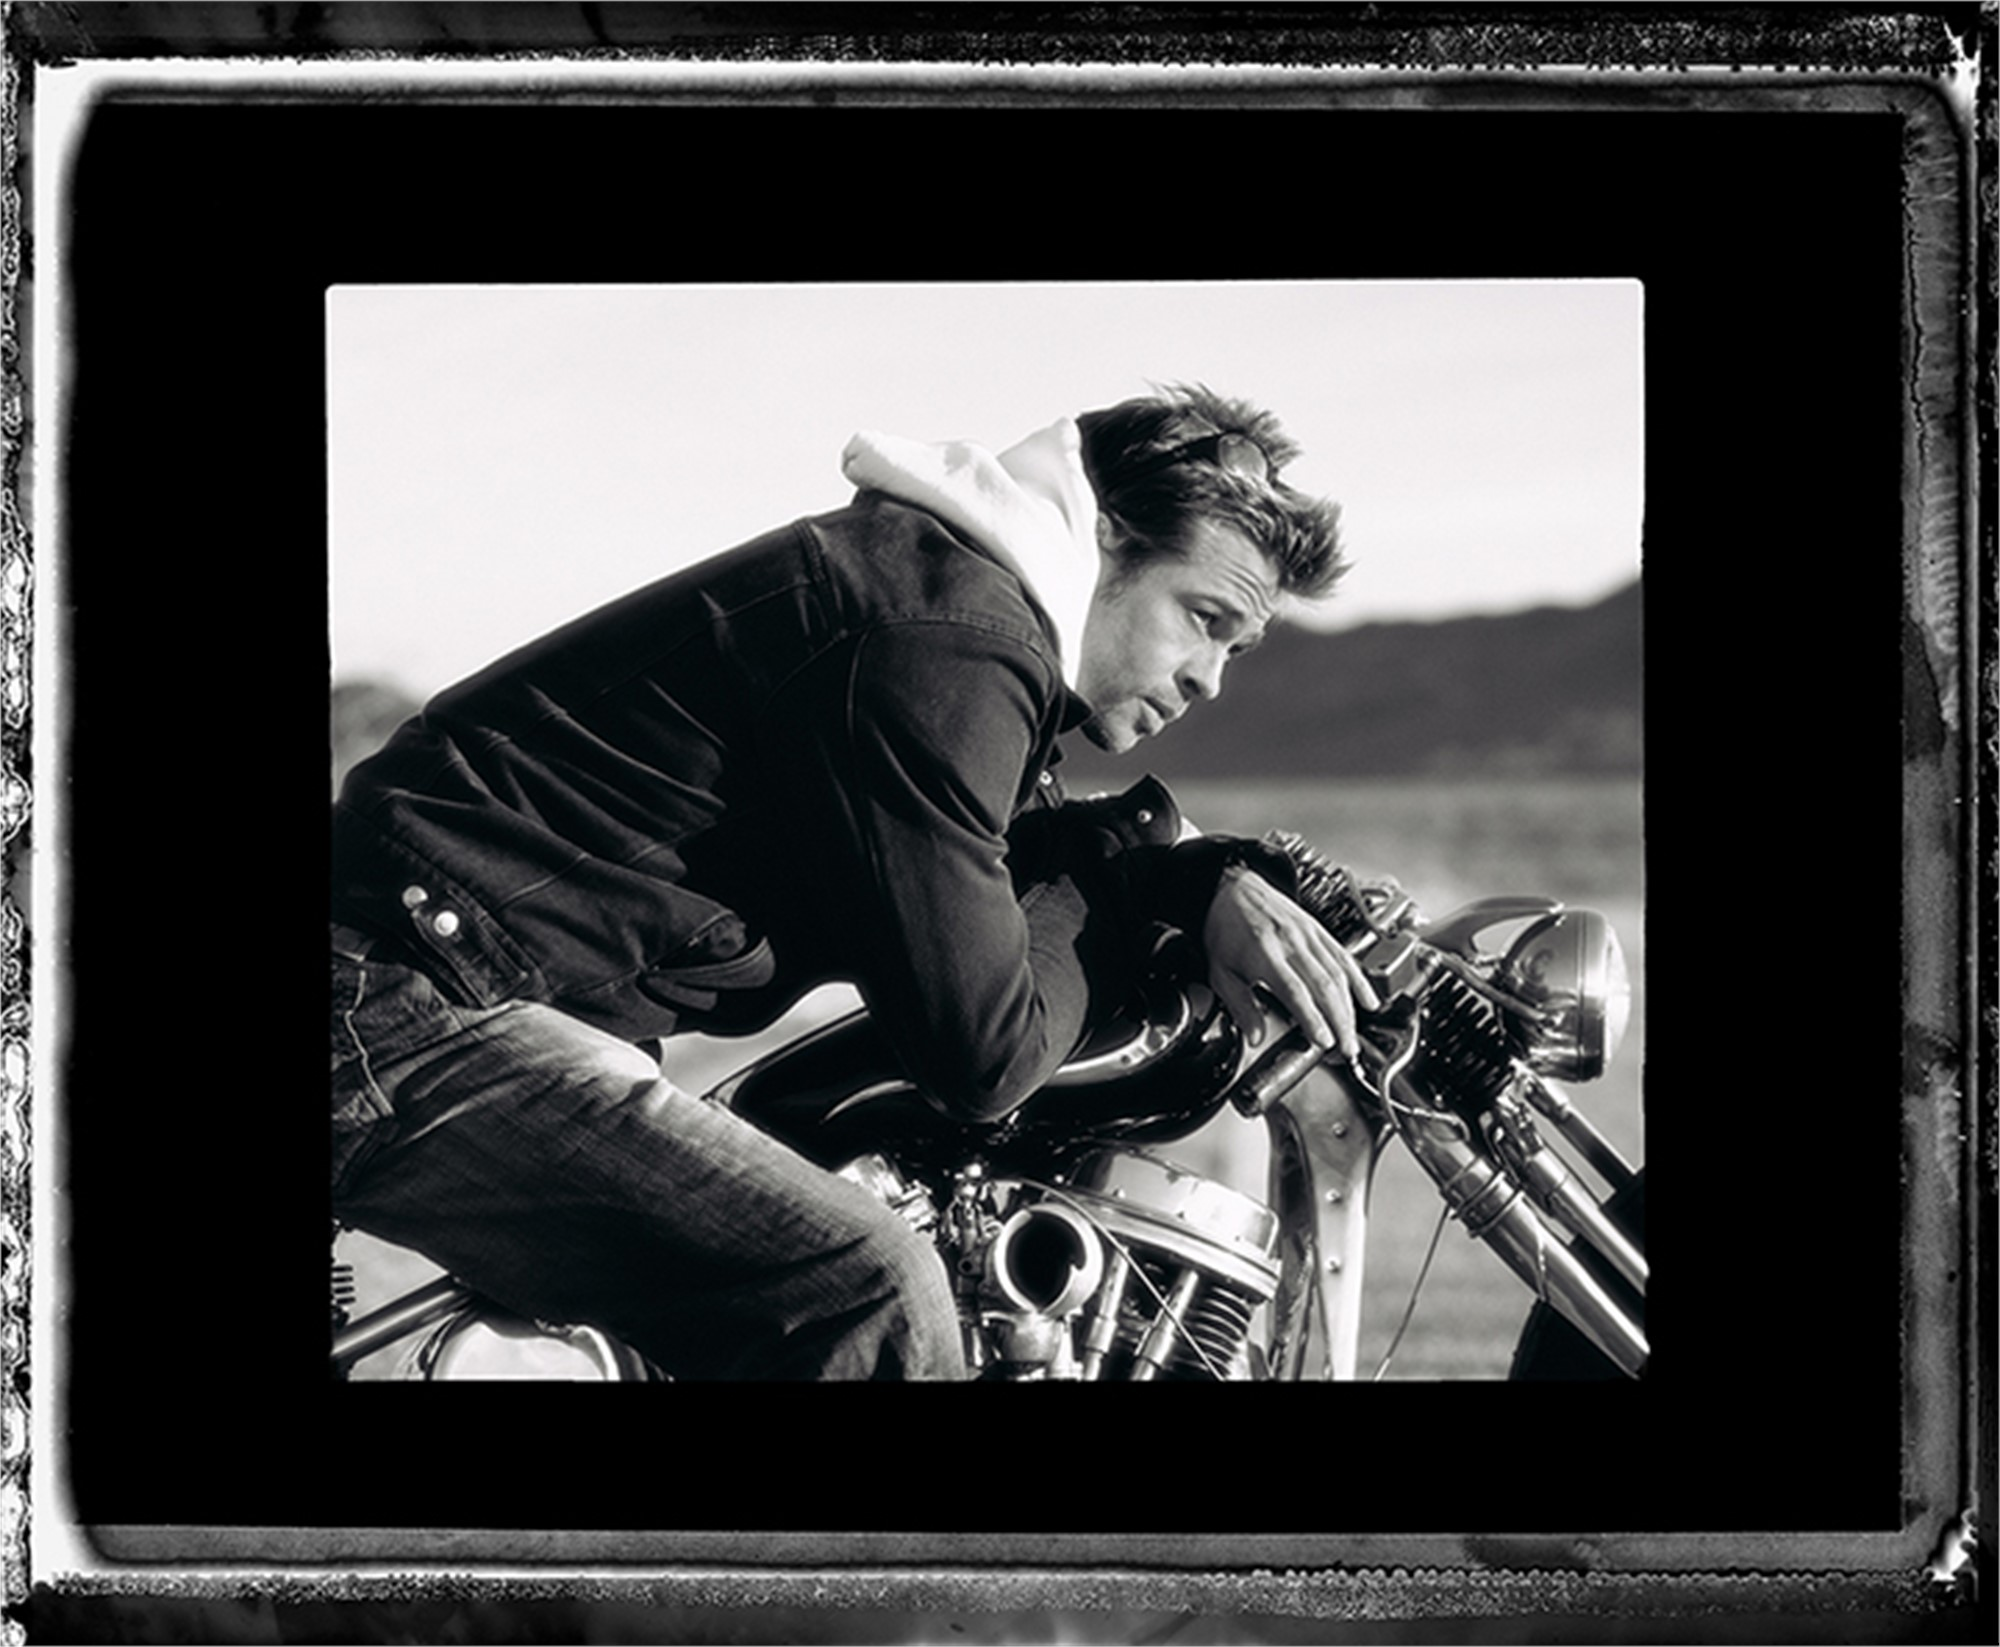 05009 Brad Pitt on Motorcycle Tilted Face BW by Timothy White